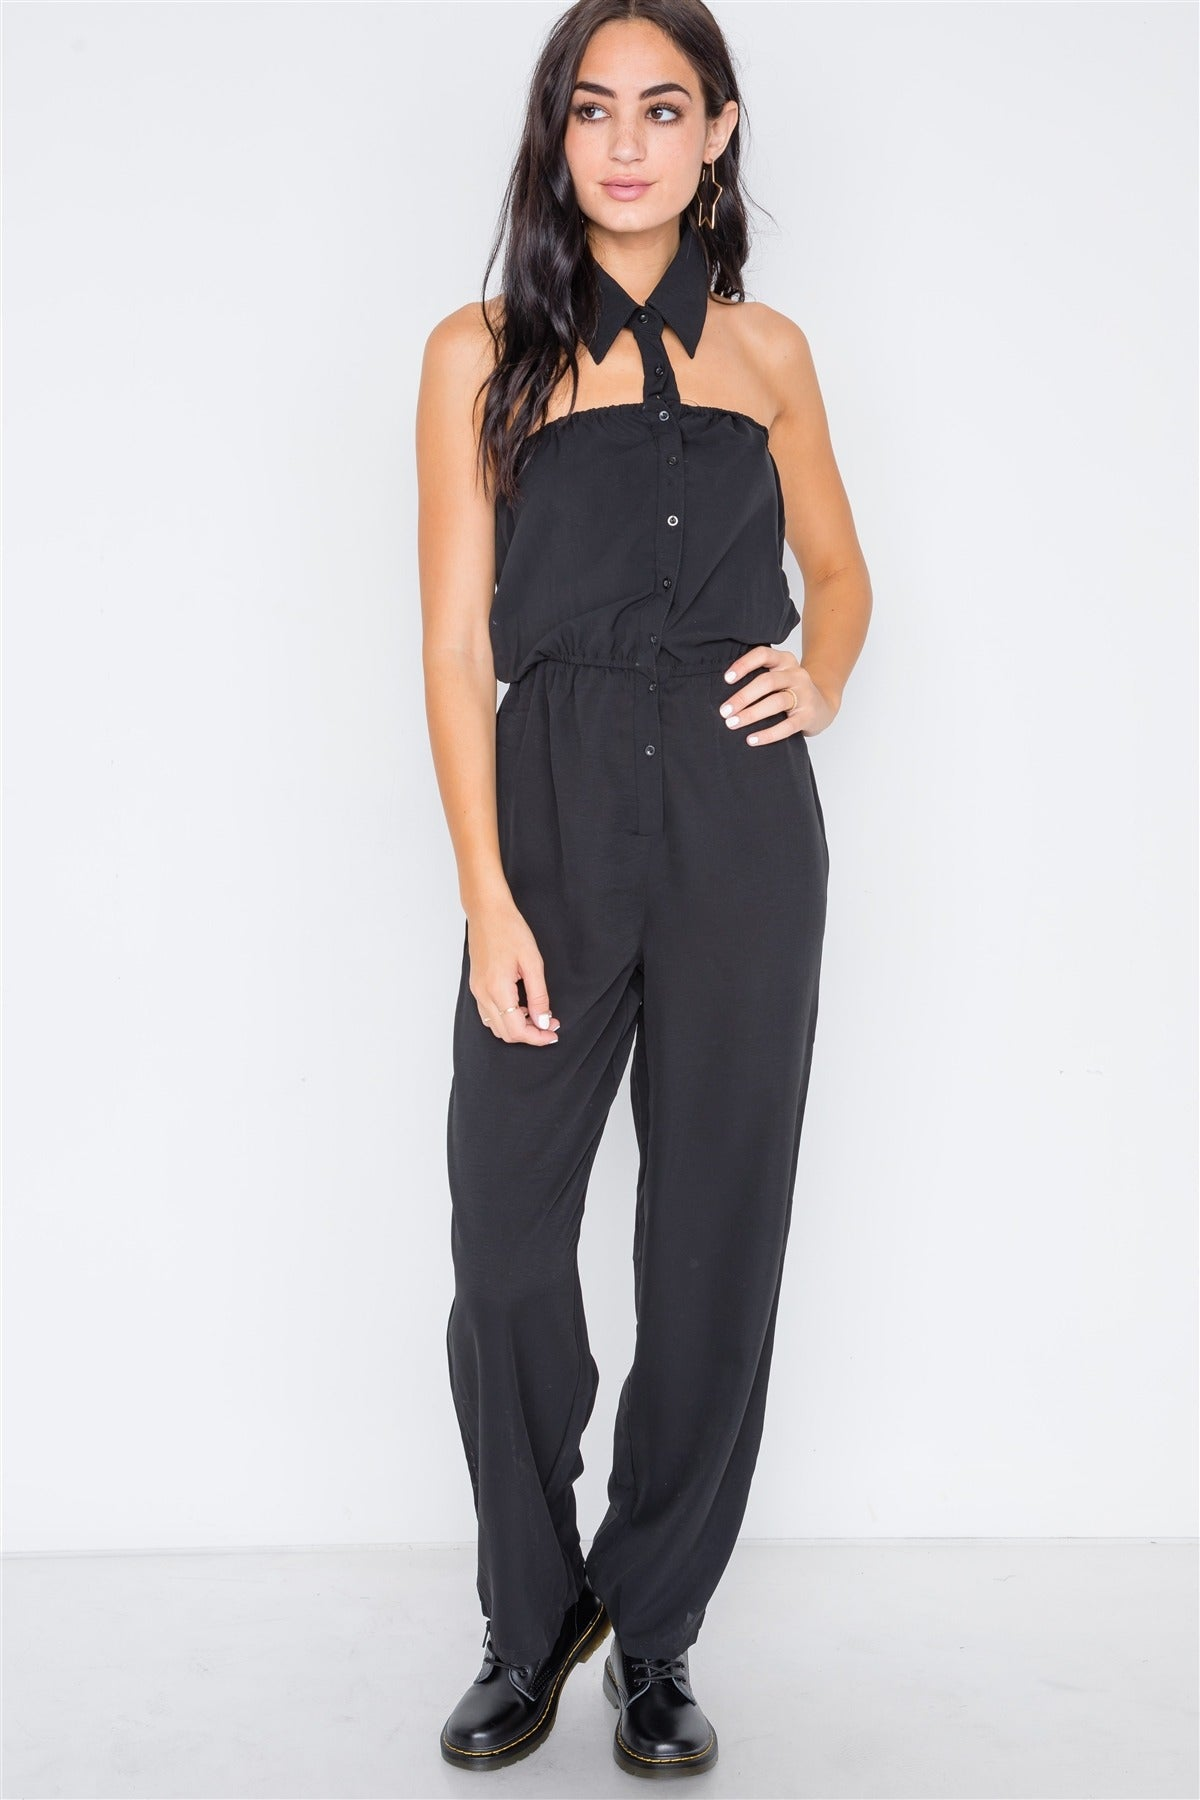 Black Basic Collar Button Down Solid Jumpsuit - Creole Couture Boutique